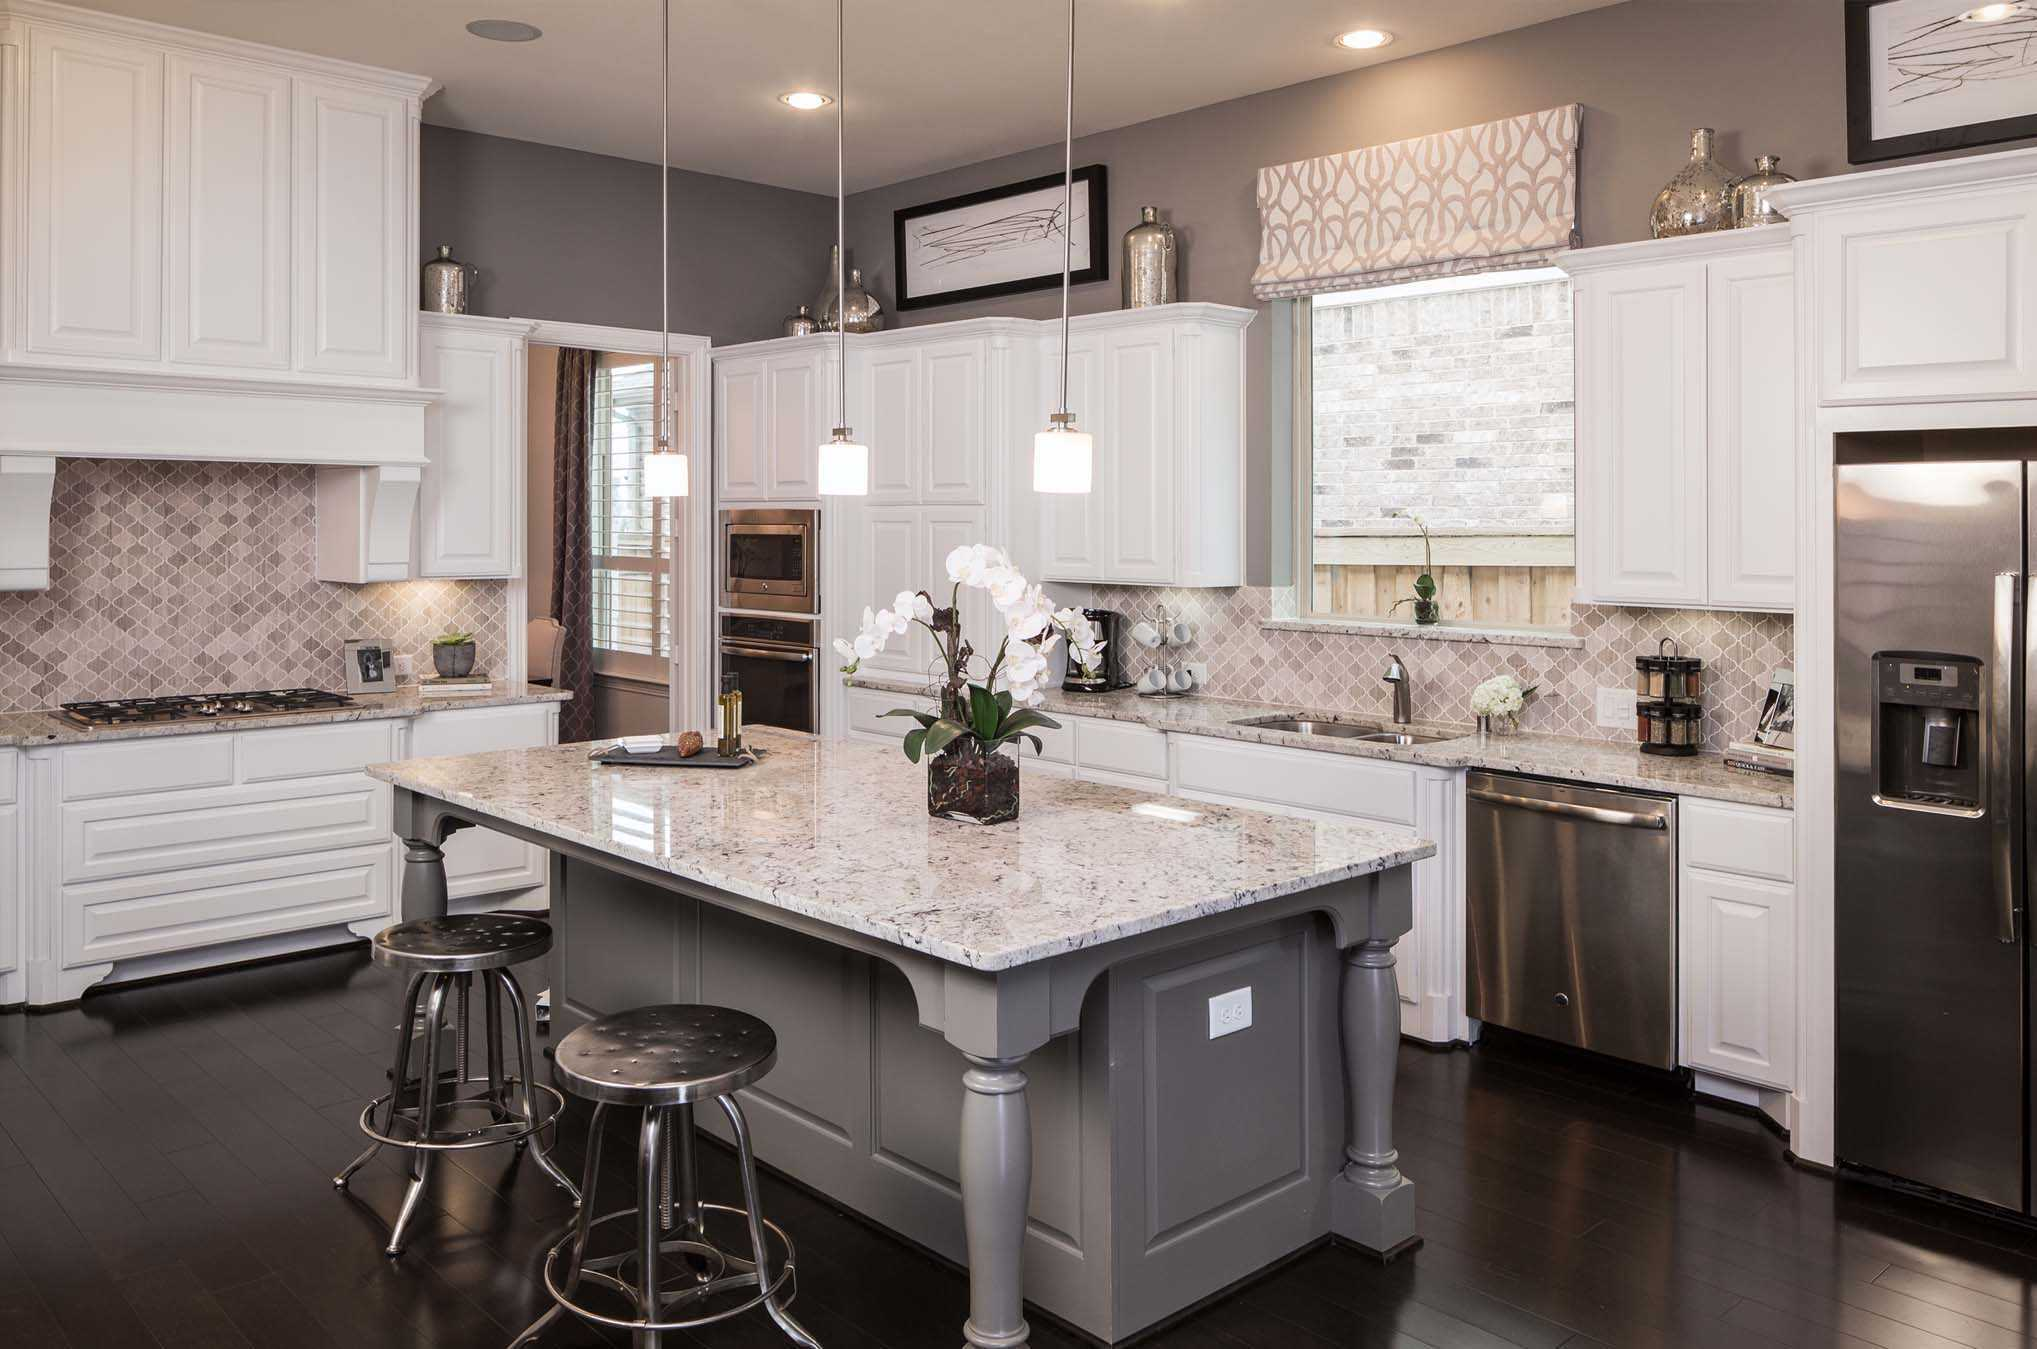 Kitchen featured in the Plan 296 By Highland Homes in Dallas, TX